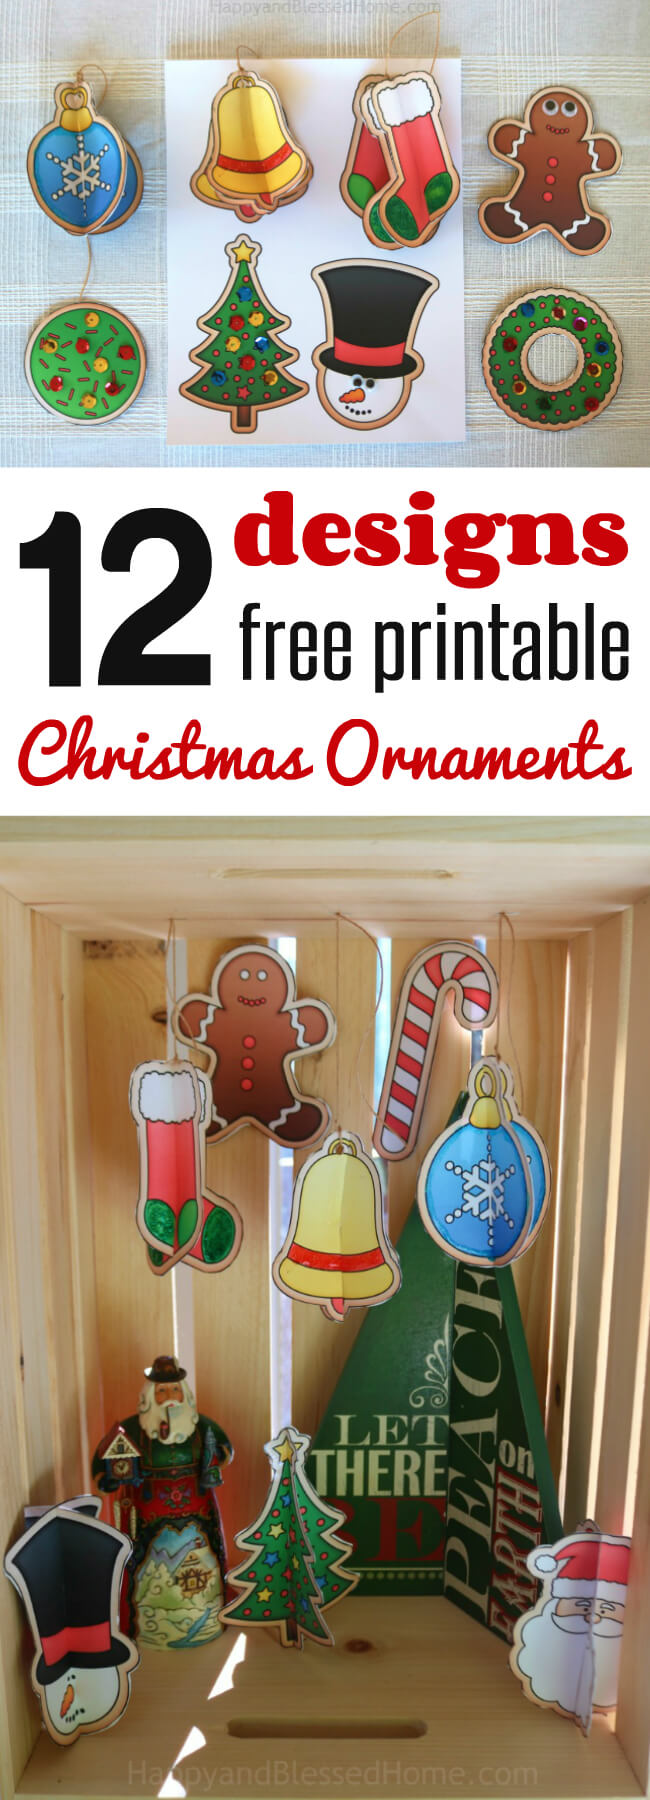 photo relating to Printable Christmas Crafts named 12 Free of charge Xmas Ornaments Printables and a Xmas Craft